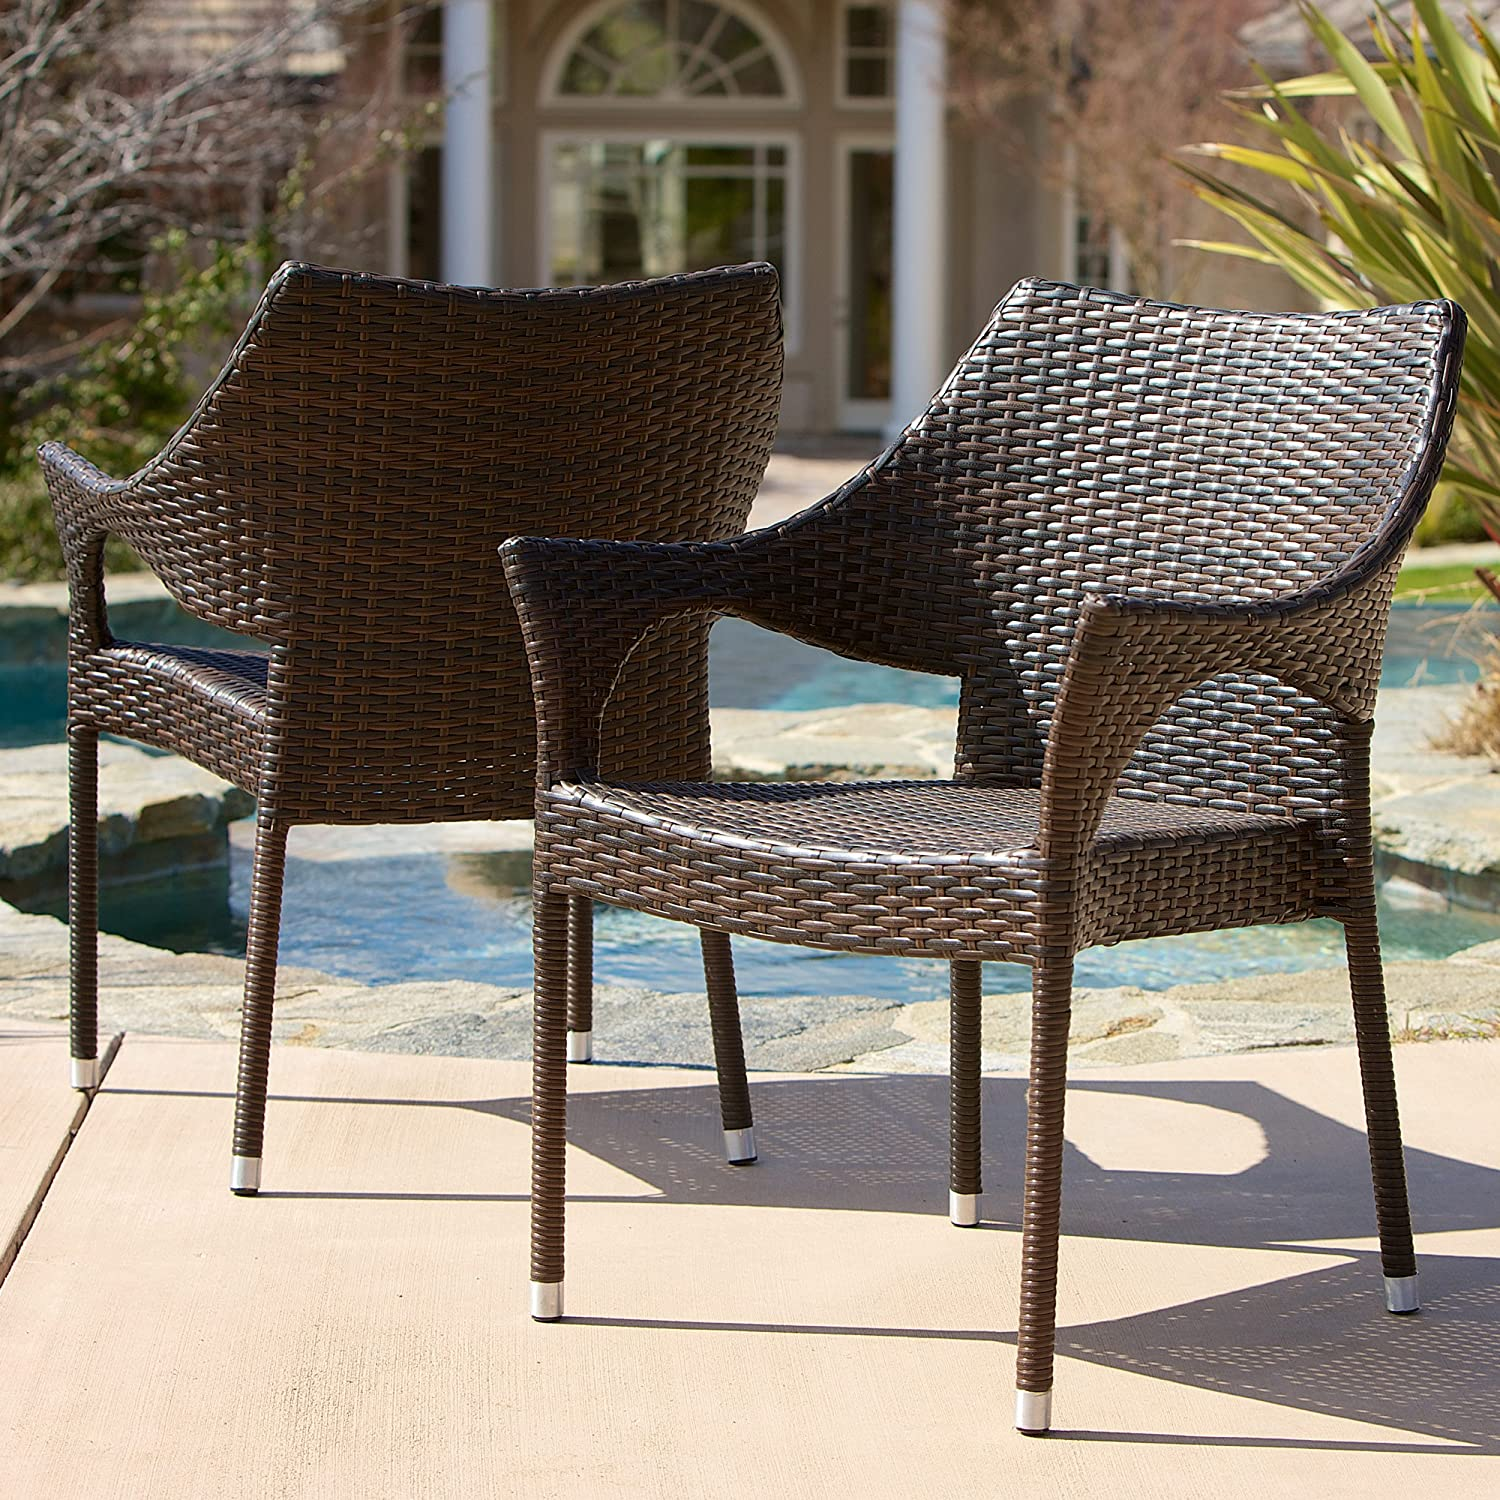 Amazon.com: Del Mar Outdoor | Wicker Stacking Chairs | Set of 2 | Perfect  for Patio | MultiBrown: Kitchen & Dining - Amazon.com: Del Mar Outdoor Wicker Stacking Chairs Set Of 2